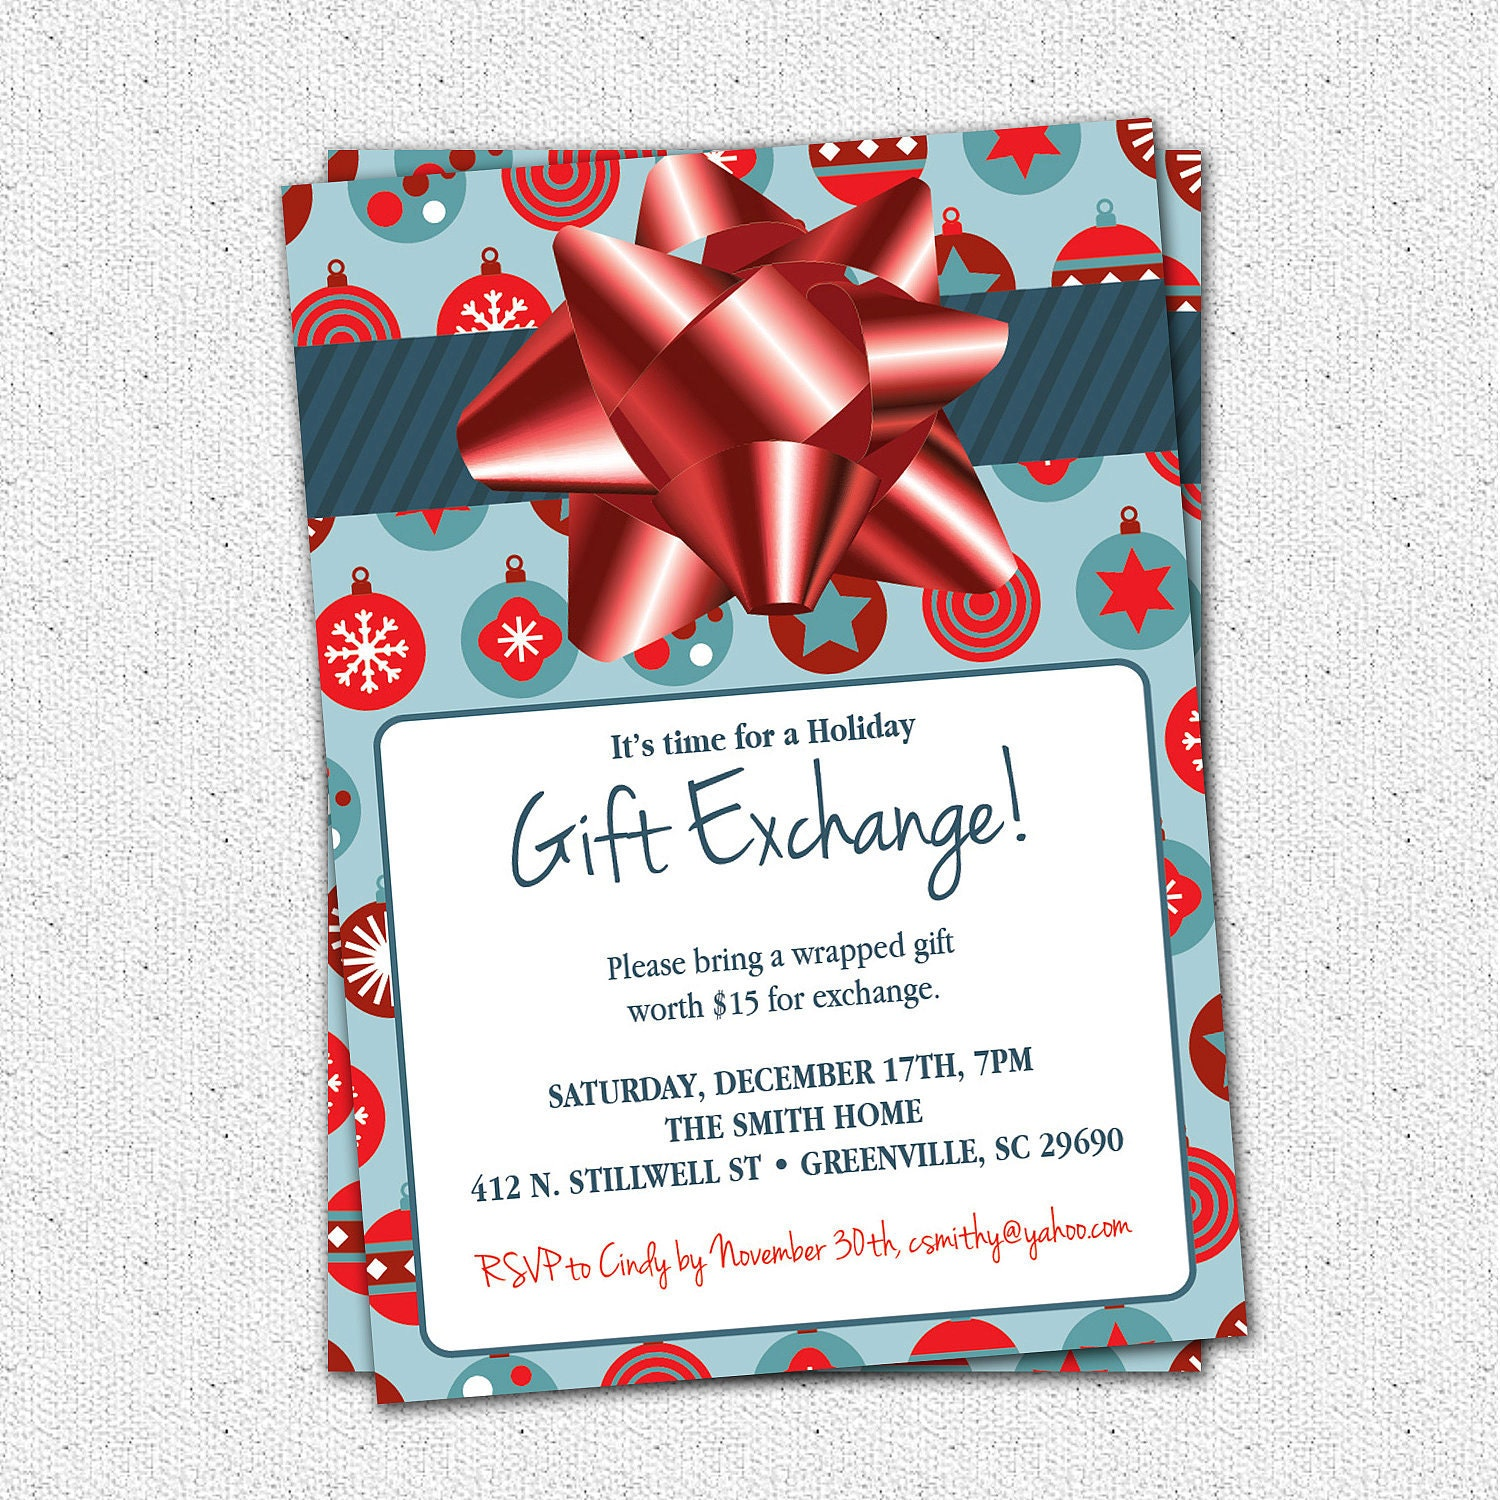 Christmas holiday gift exchange party invitation blue or green Good gifts for gift exchange